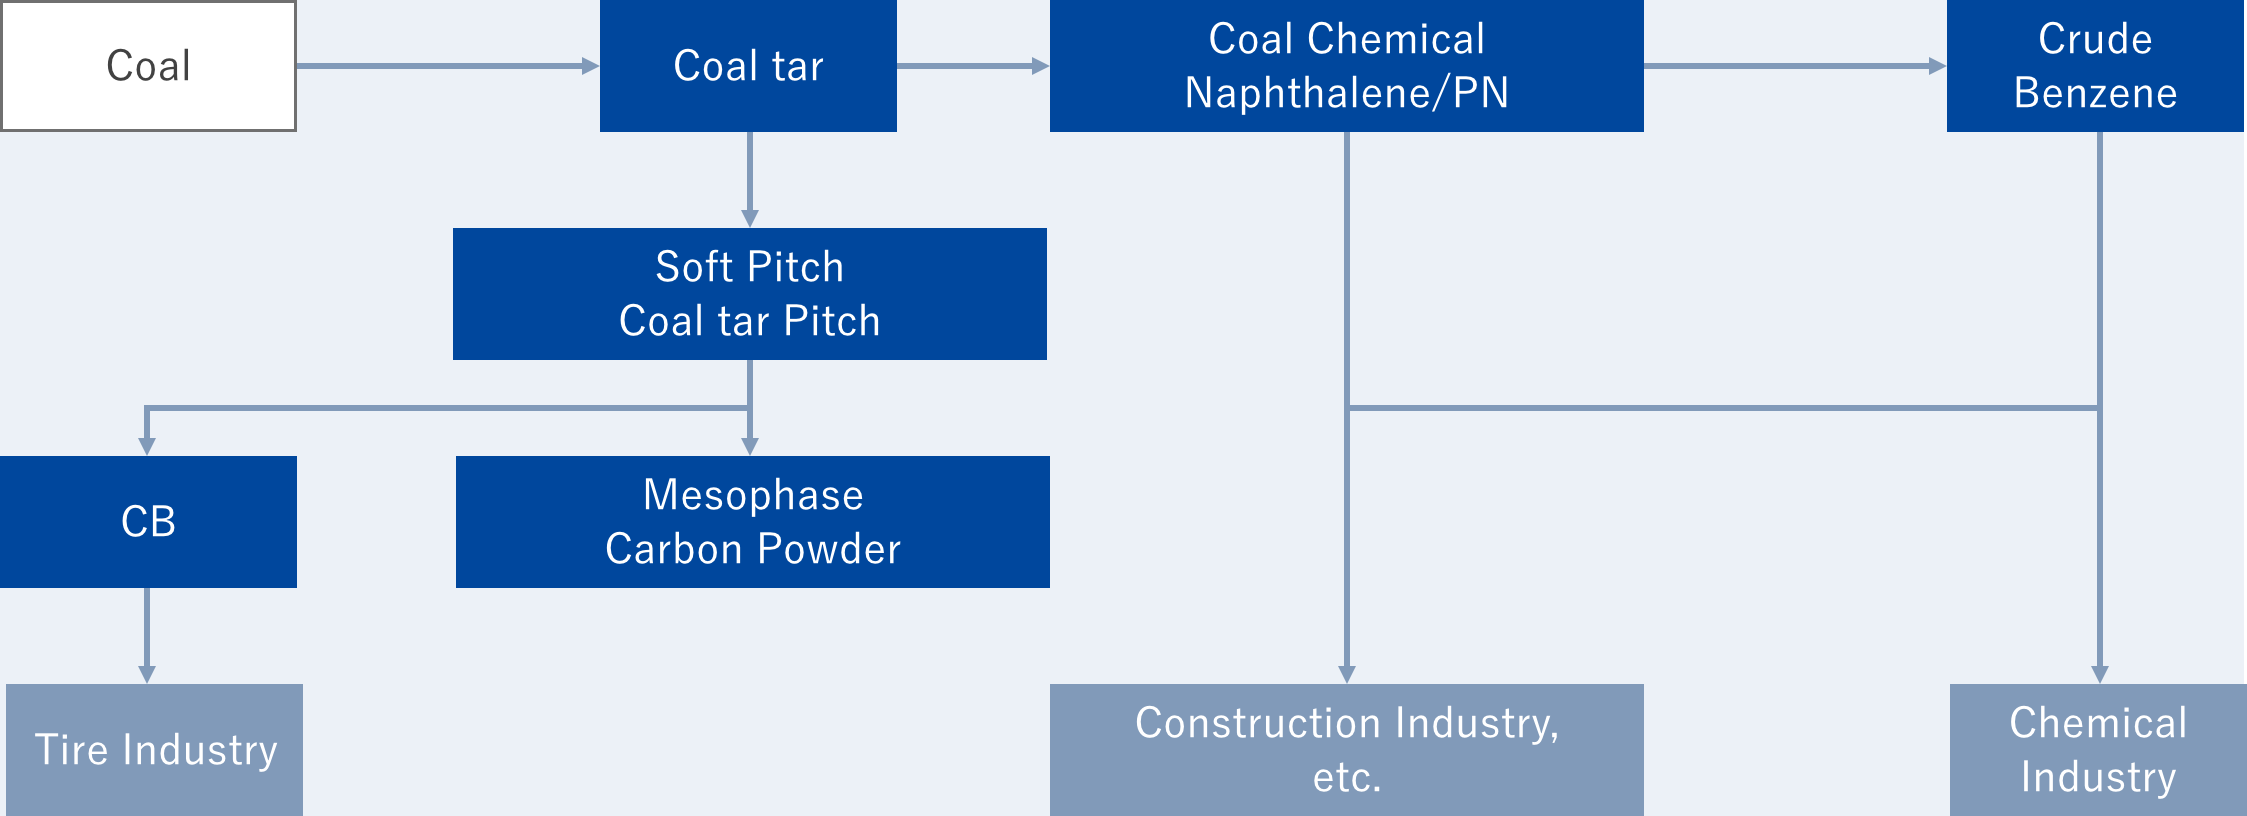 Coal chemical